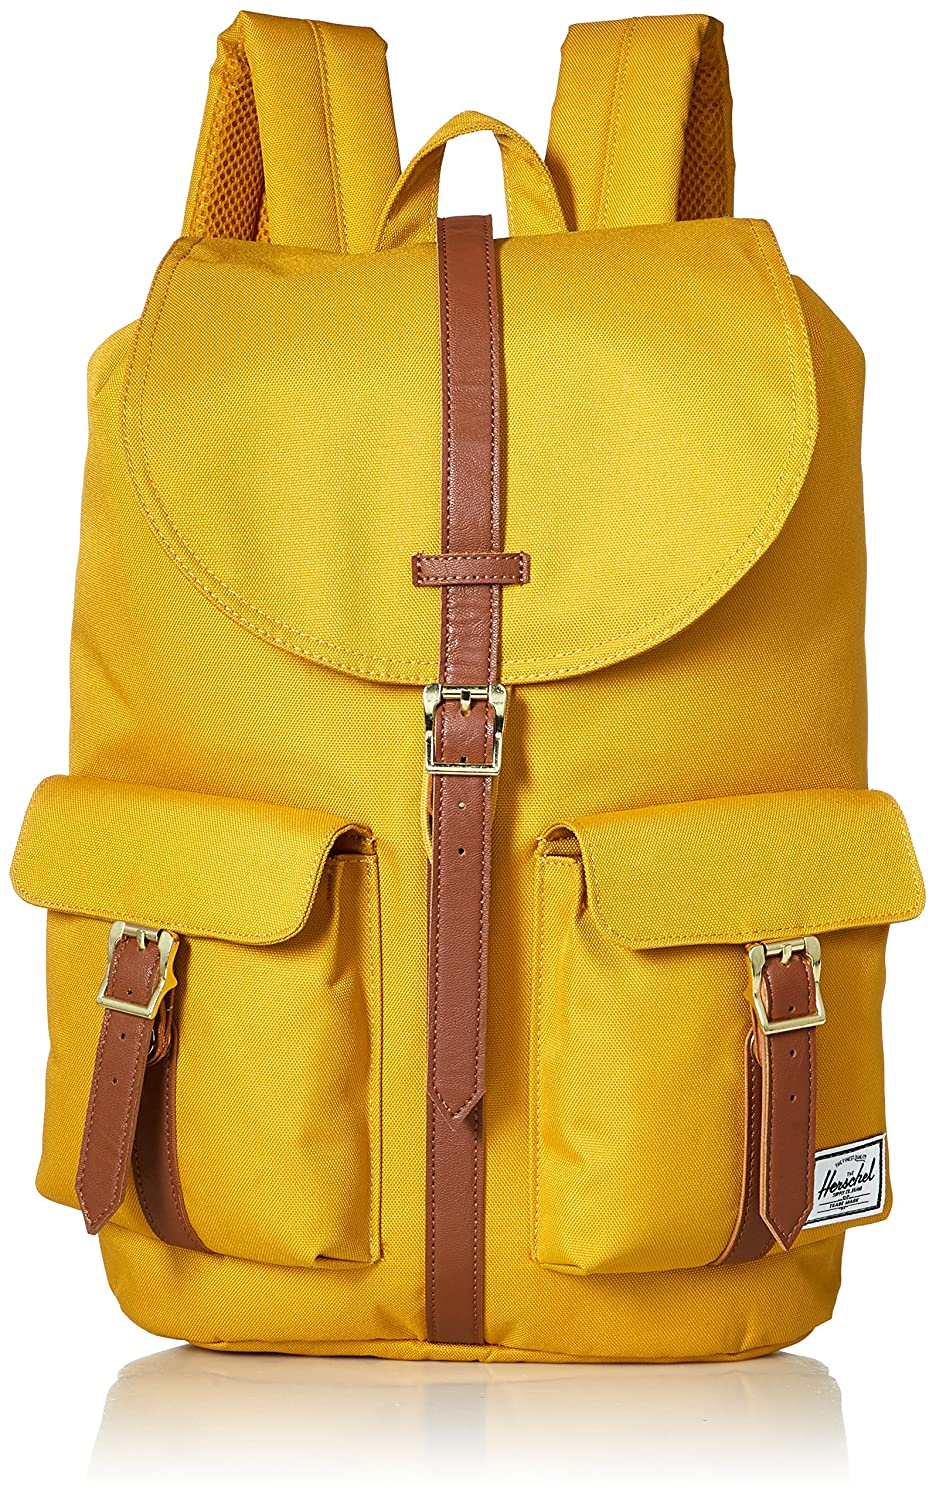 3. Herschel Supply Co. Dawson Backpack, Arrowwood/Tan Synthetic Leather, One Size